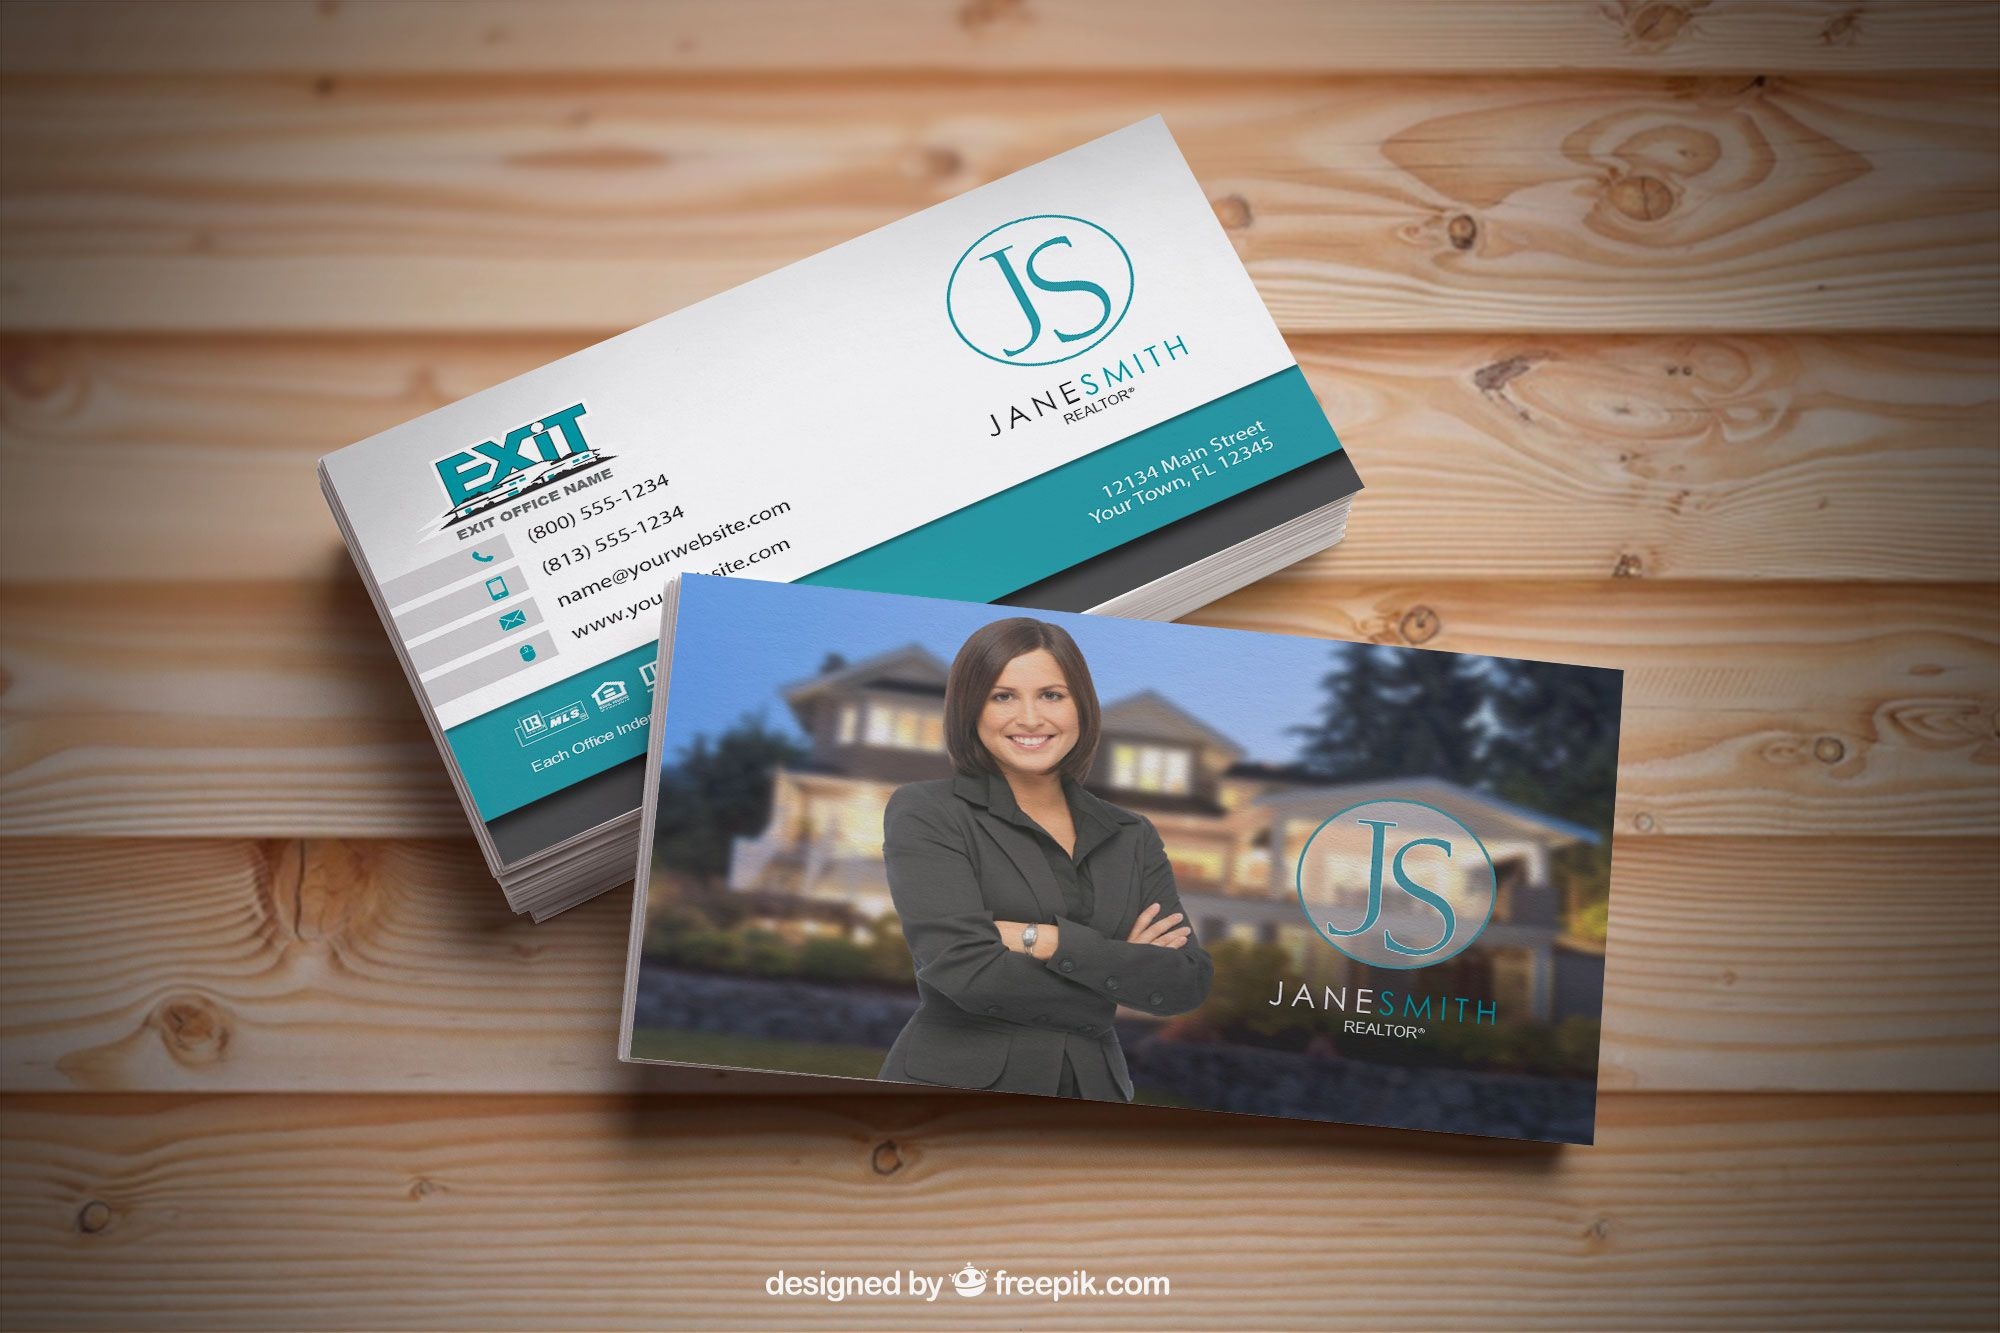 Clean And Modern Exit Realty Business Card Designs For Realtors Real Estate Agent Business Cards Keller Williams Business Cards Realtor Business Cards